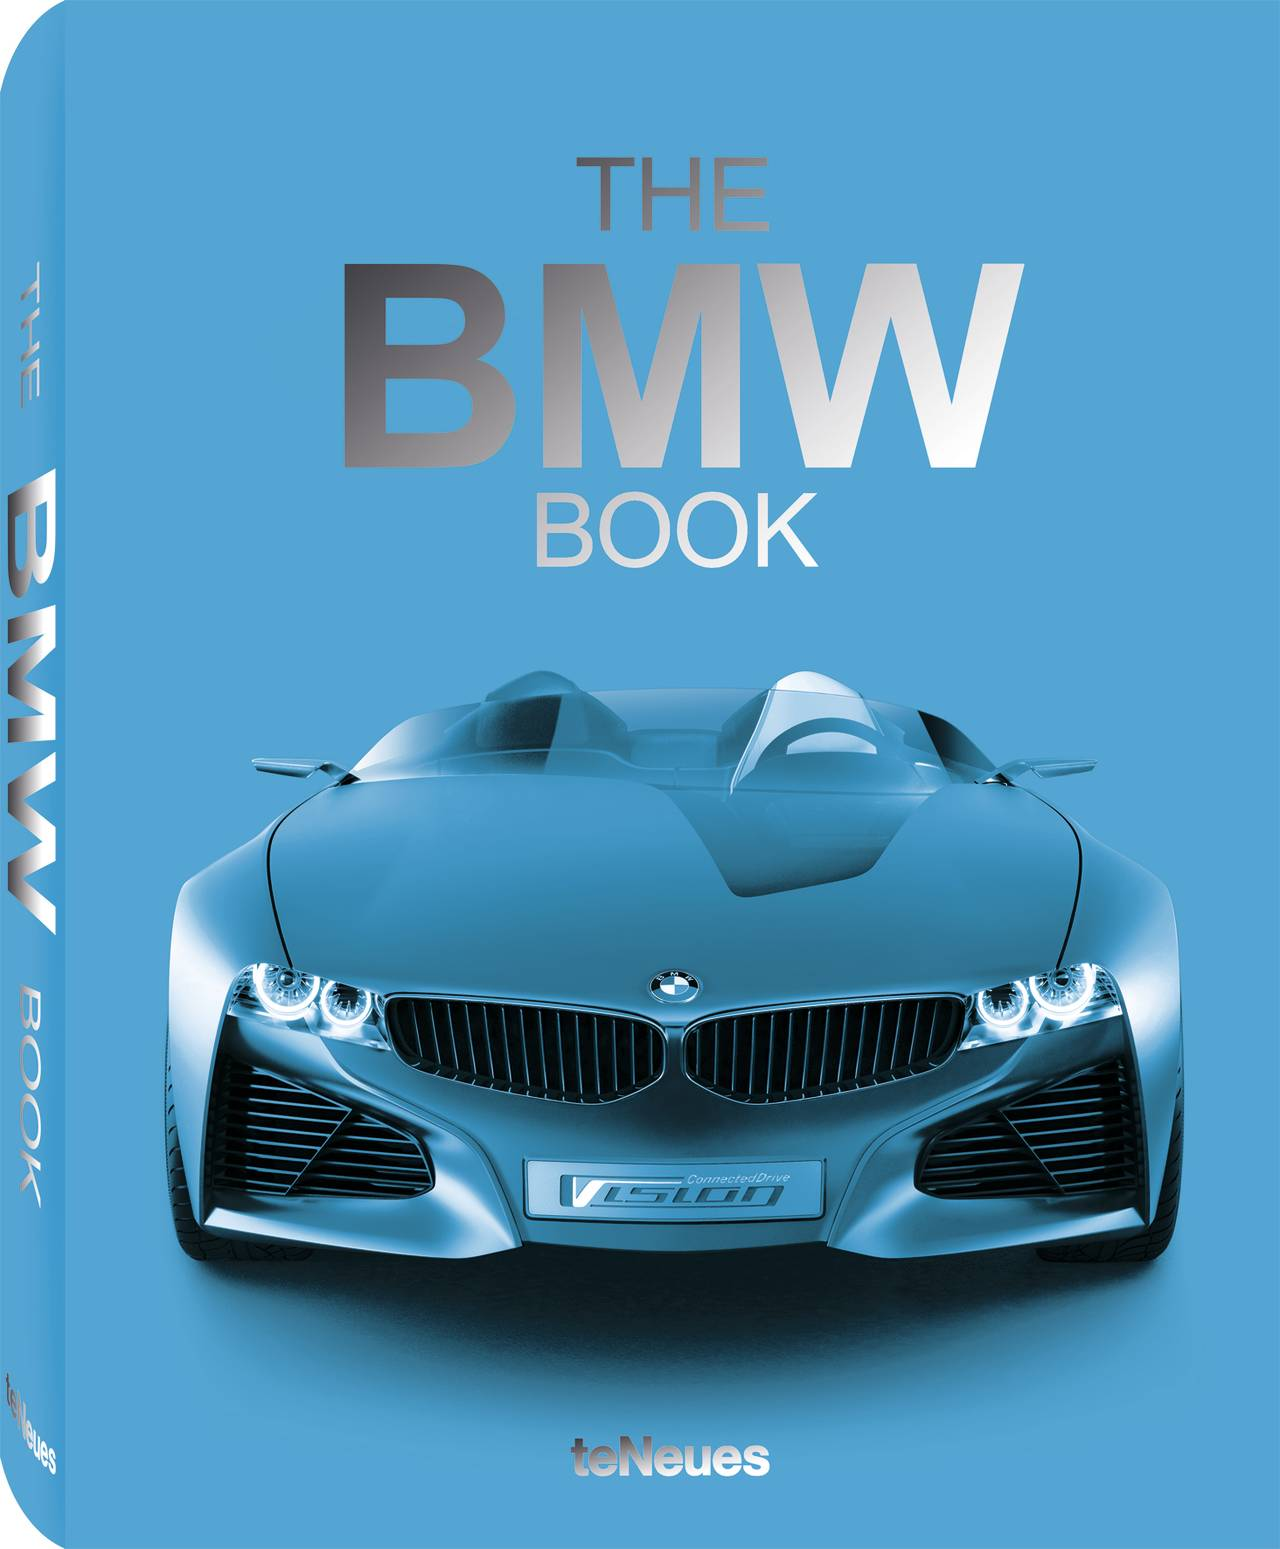 © THE BMW BOOK, published by teNeues, www.teneues.com. Photo © BMW Group Design